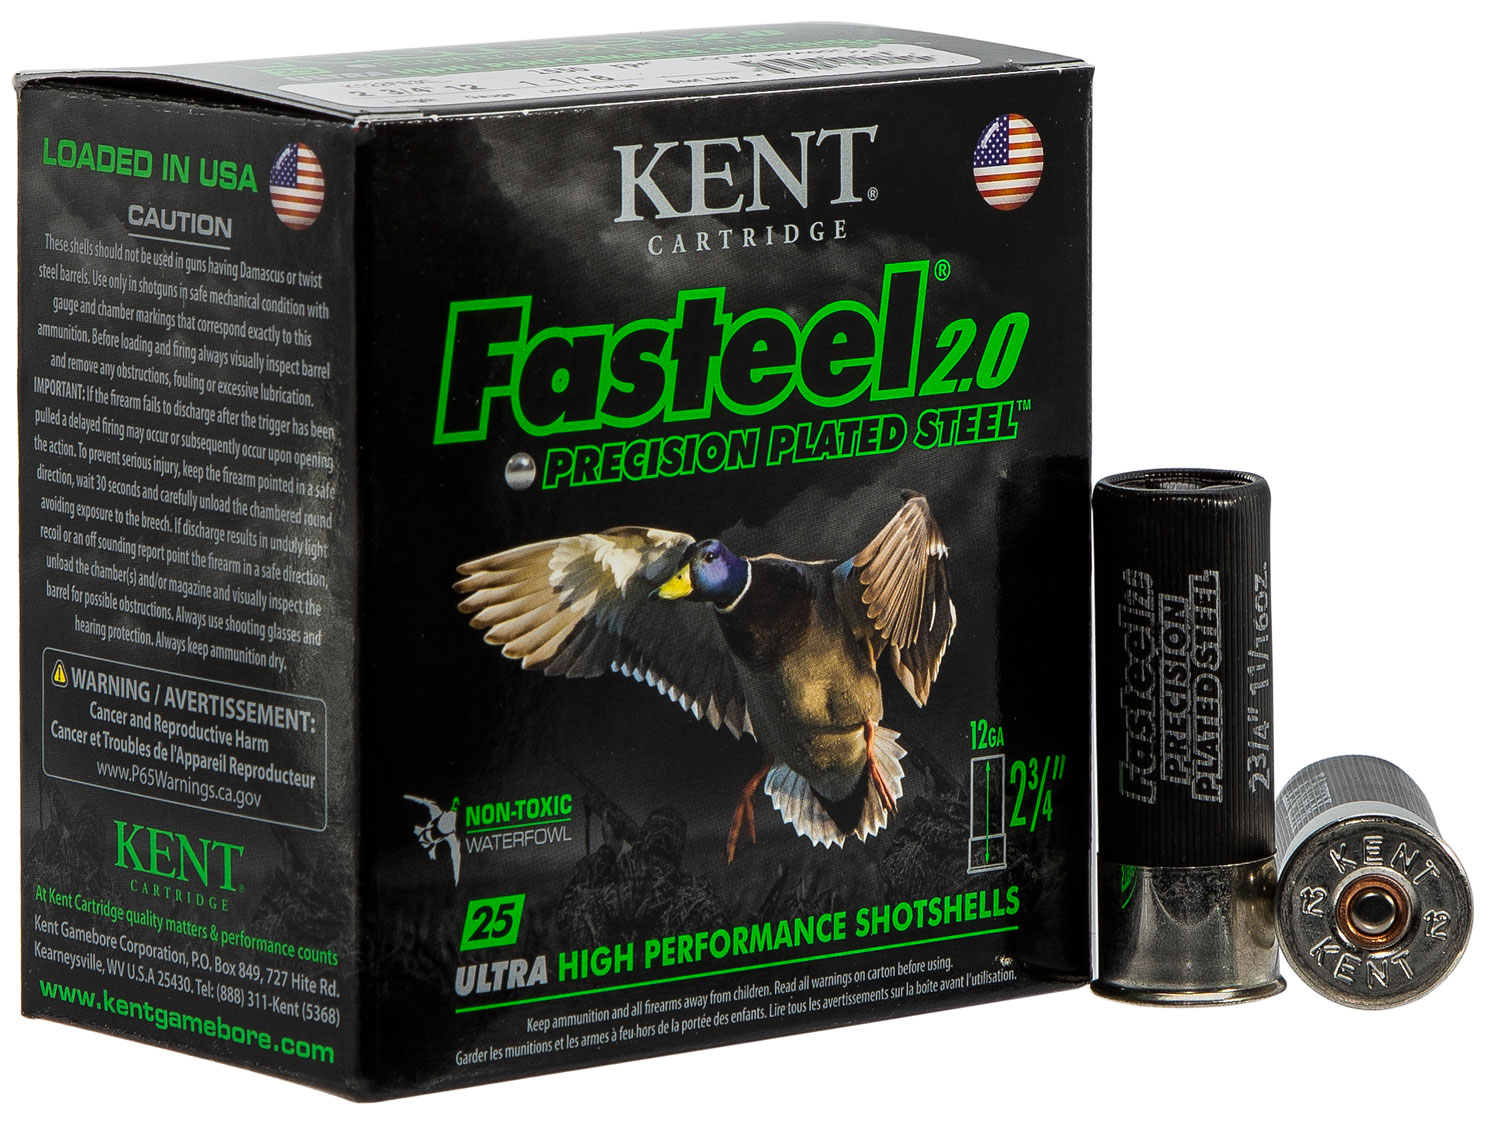 Kent Cartridge K122FS304 Fasteel 2.0  12 Gauge 2.75